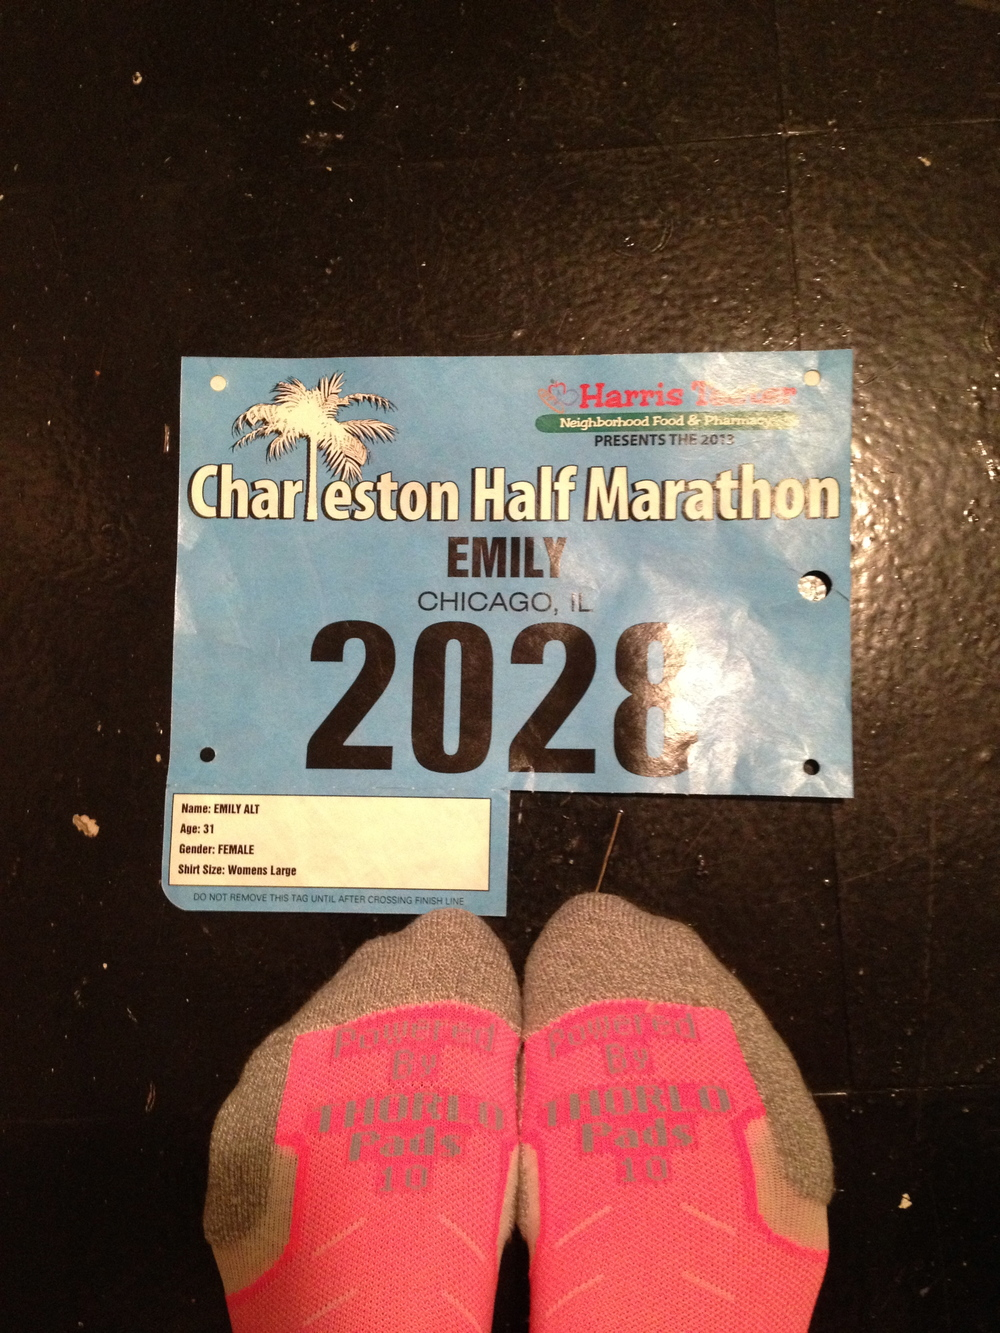 Pre-Charleston Half Marathon 2013.  Just registered for the 2014 race last week and know I won't be disappointed...I mean, they give you shrimp and grits at the end.  Done.